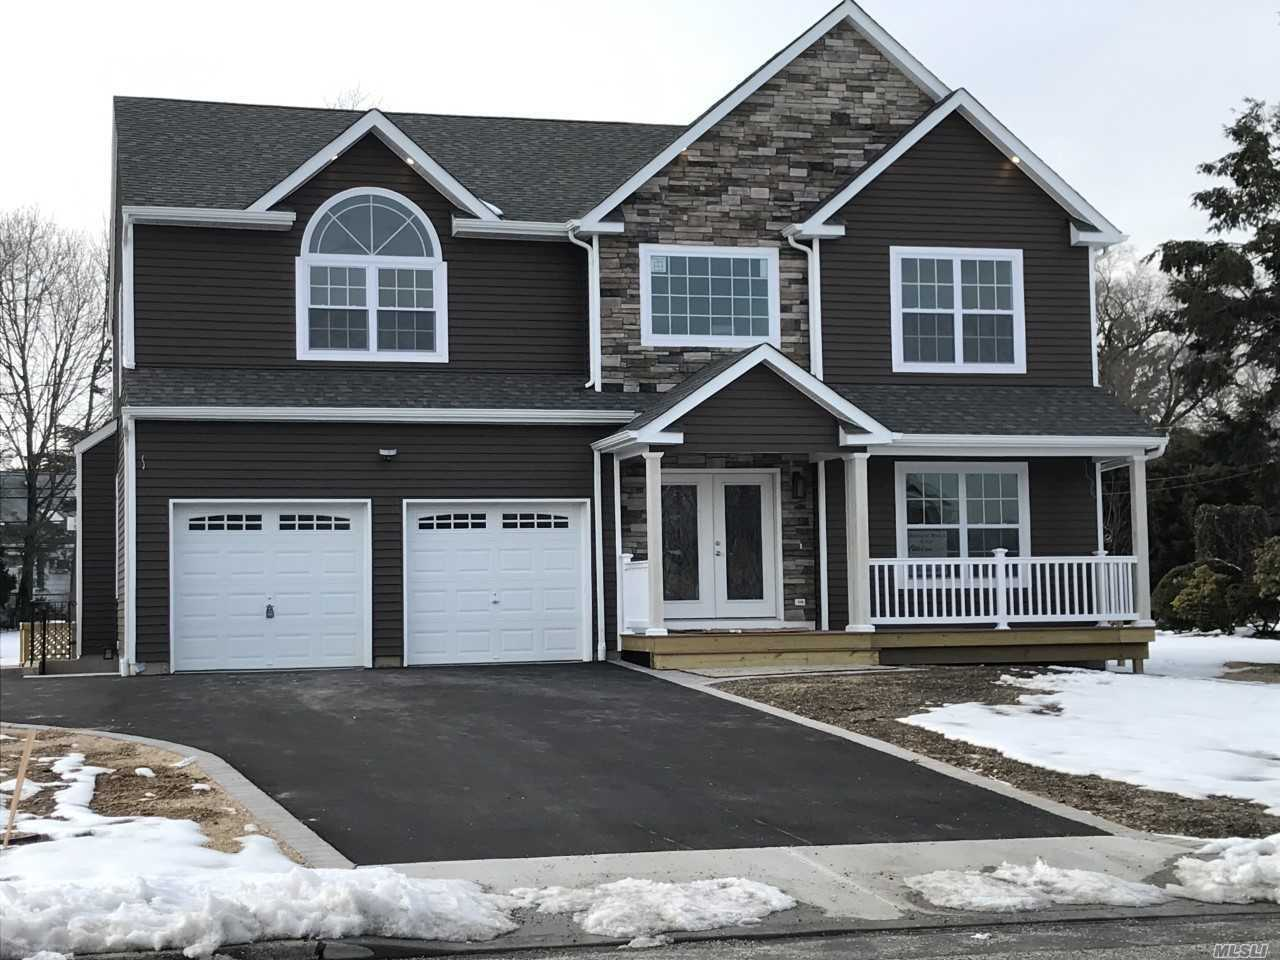 To Be Built 5 Bedroomcolonial On 3/4Acre Parcel-Custom Kitchen/Granite Countertops/Stainless Steel Appliances, Oak Flrs, 2 Zone Central Air, Fireplace, Great Room, Molding Package, Hi Hats, Architectual Roof, Vinyl Siding, 200 Amp Electrical Ser, Cedar Impression Siding Front, Still Time To Customize.